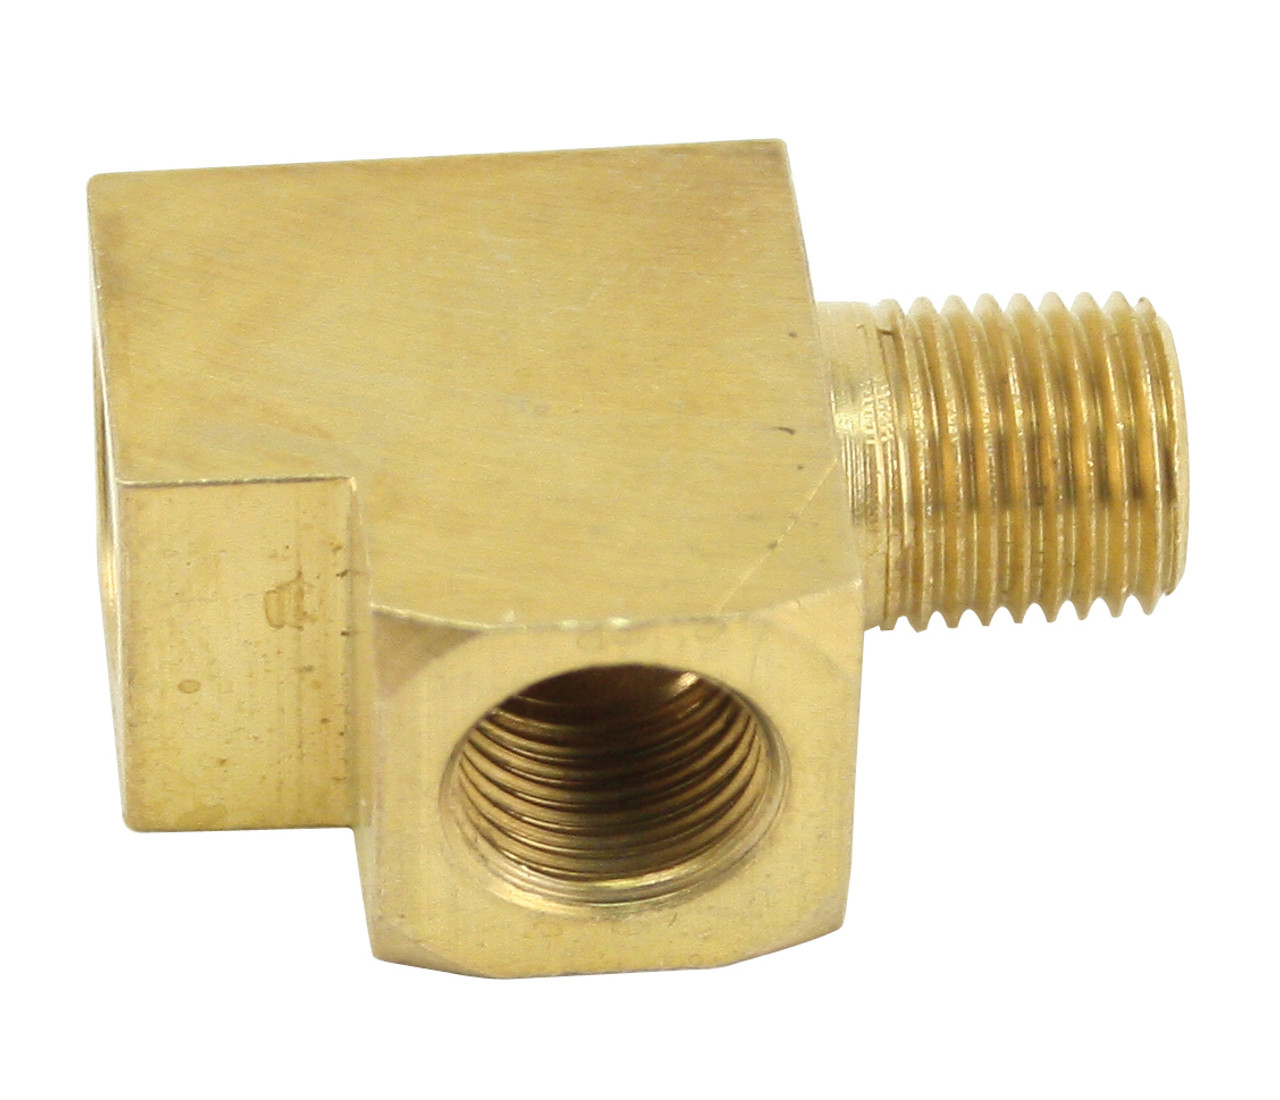 Brass T Fitting 1/8 Inch For Guages, Each, Fits VW Bug Baja Beetle Type-1